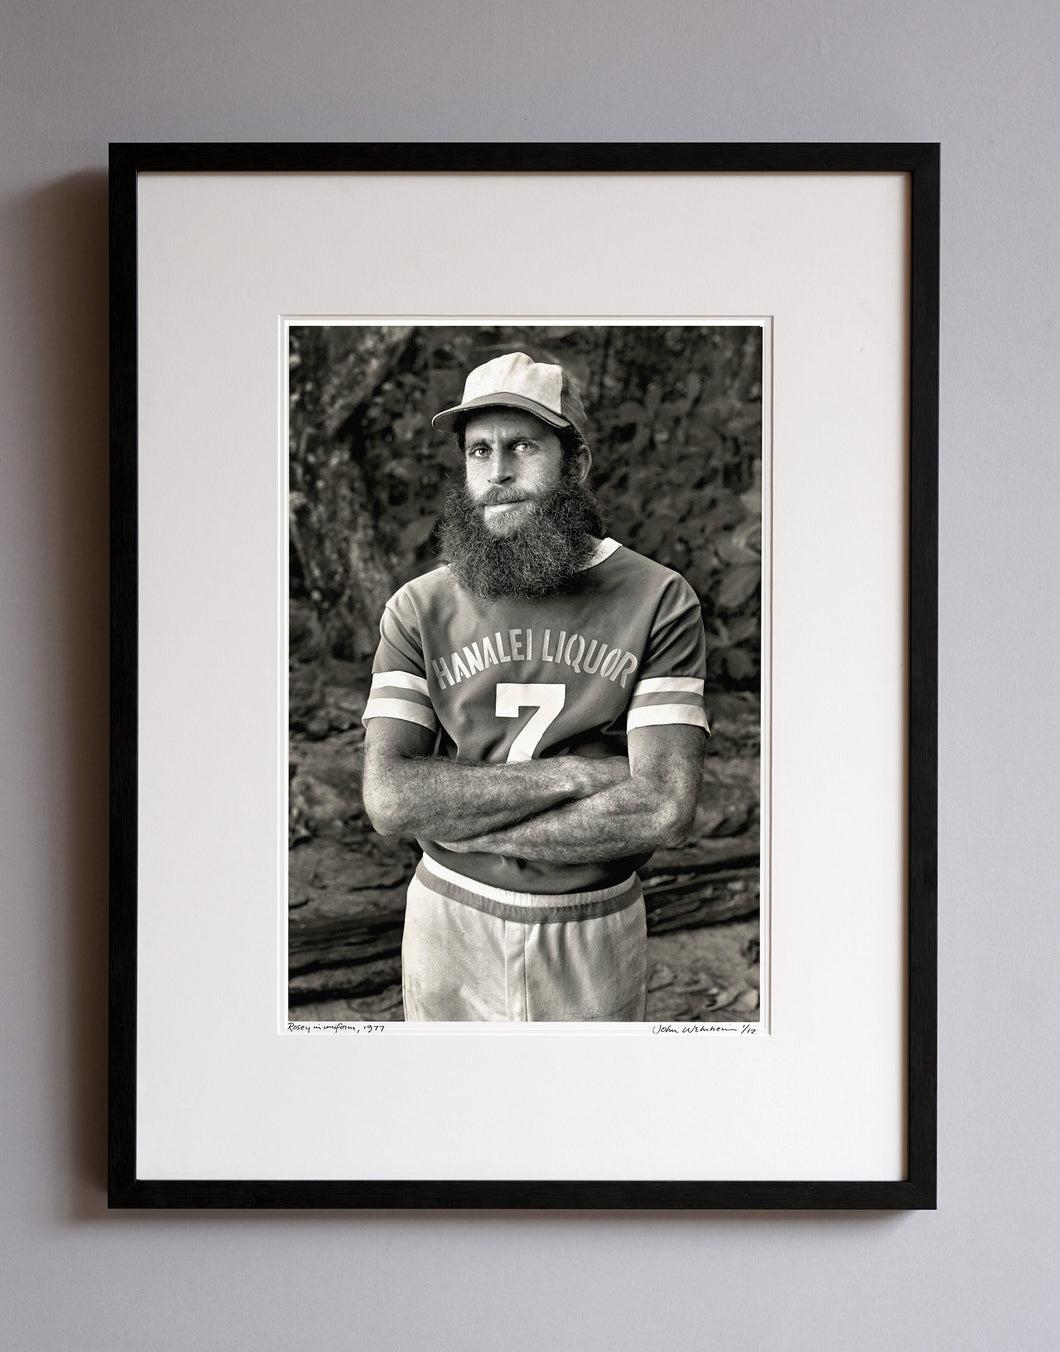 Rosey in uniform, 1977 - Framed Print